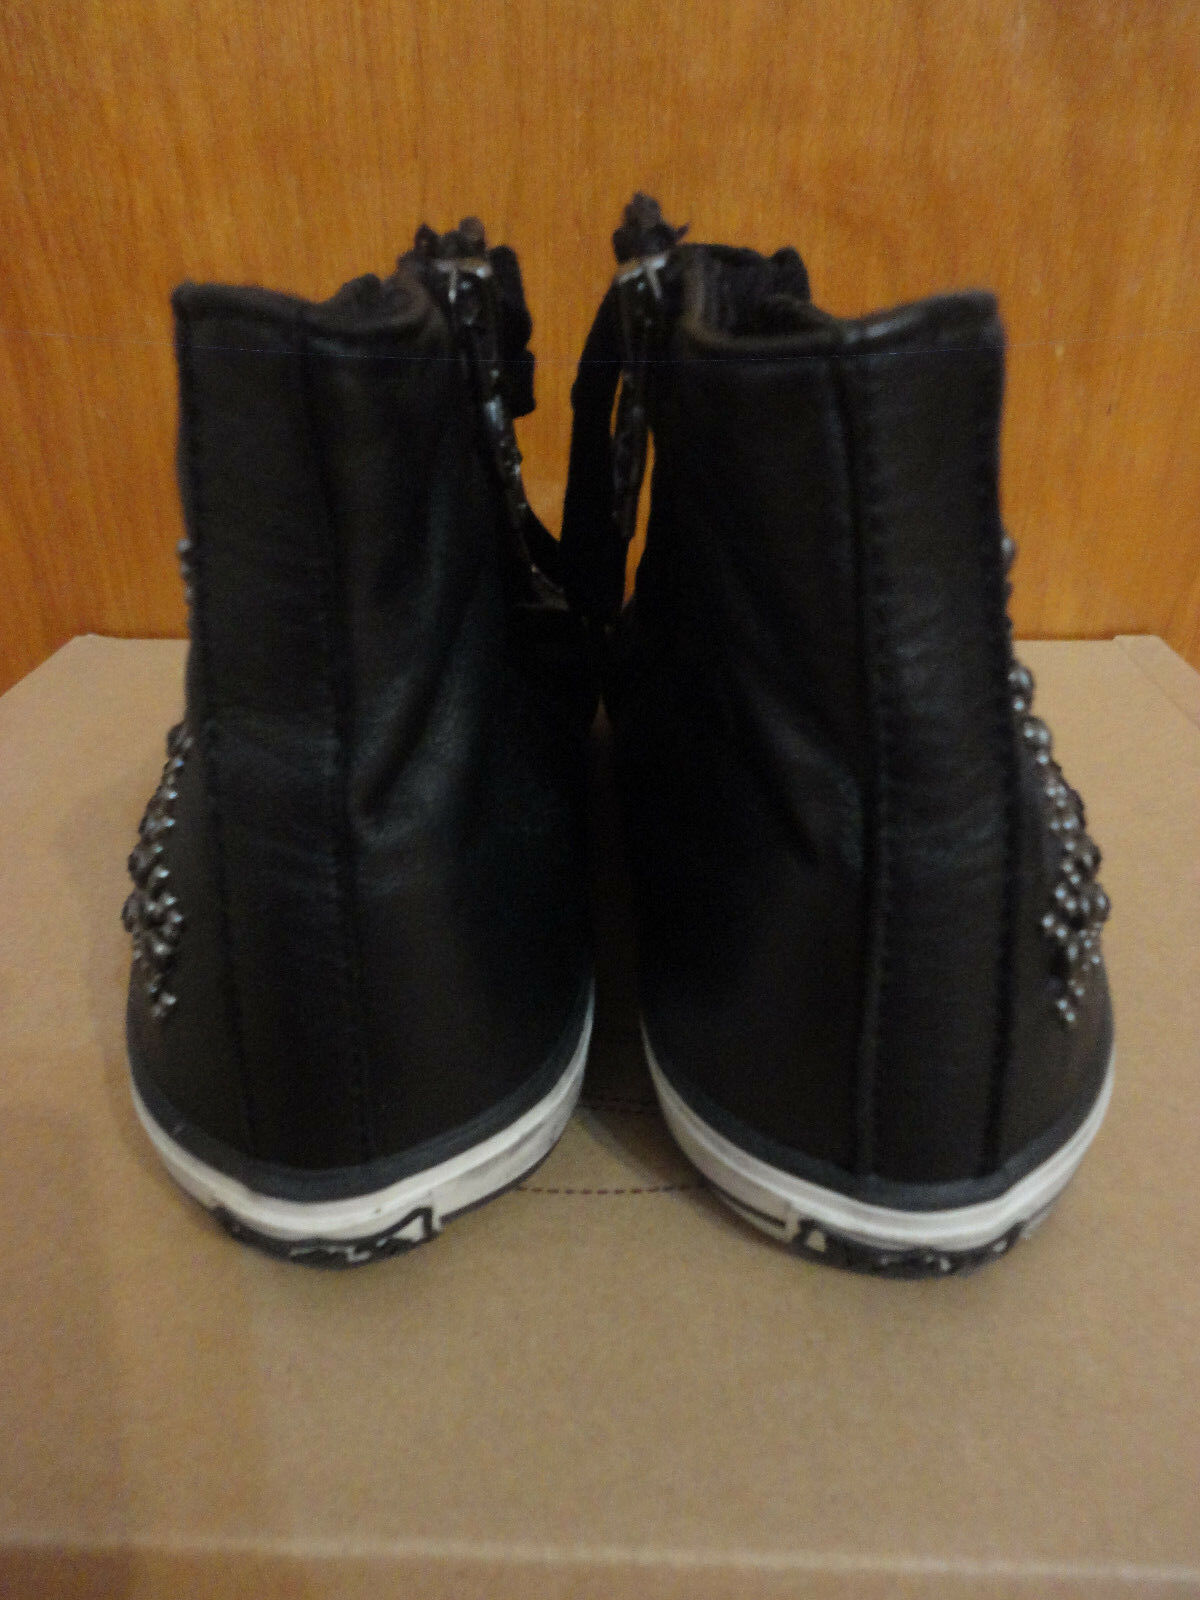 Ash Vibration Star Jewel Studded Black Leather Hi Top Trainer Sneakers 38 8